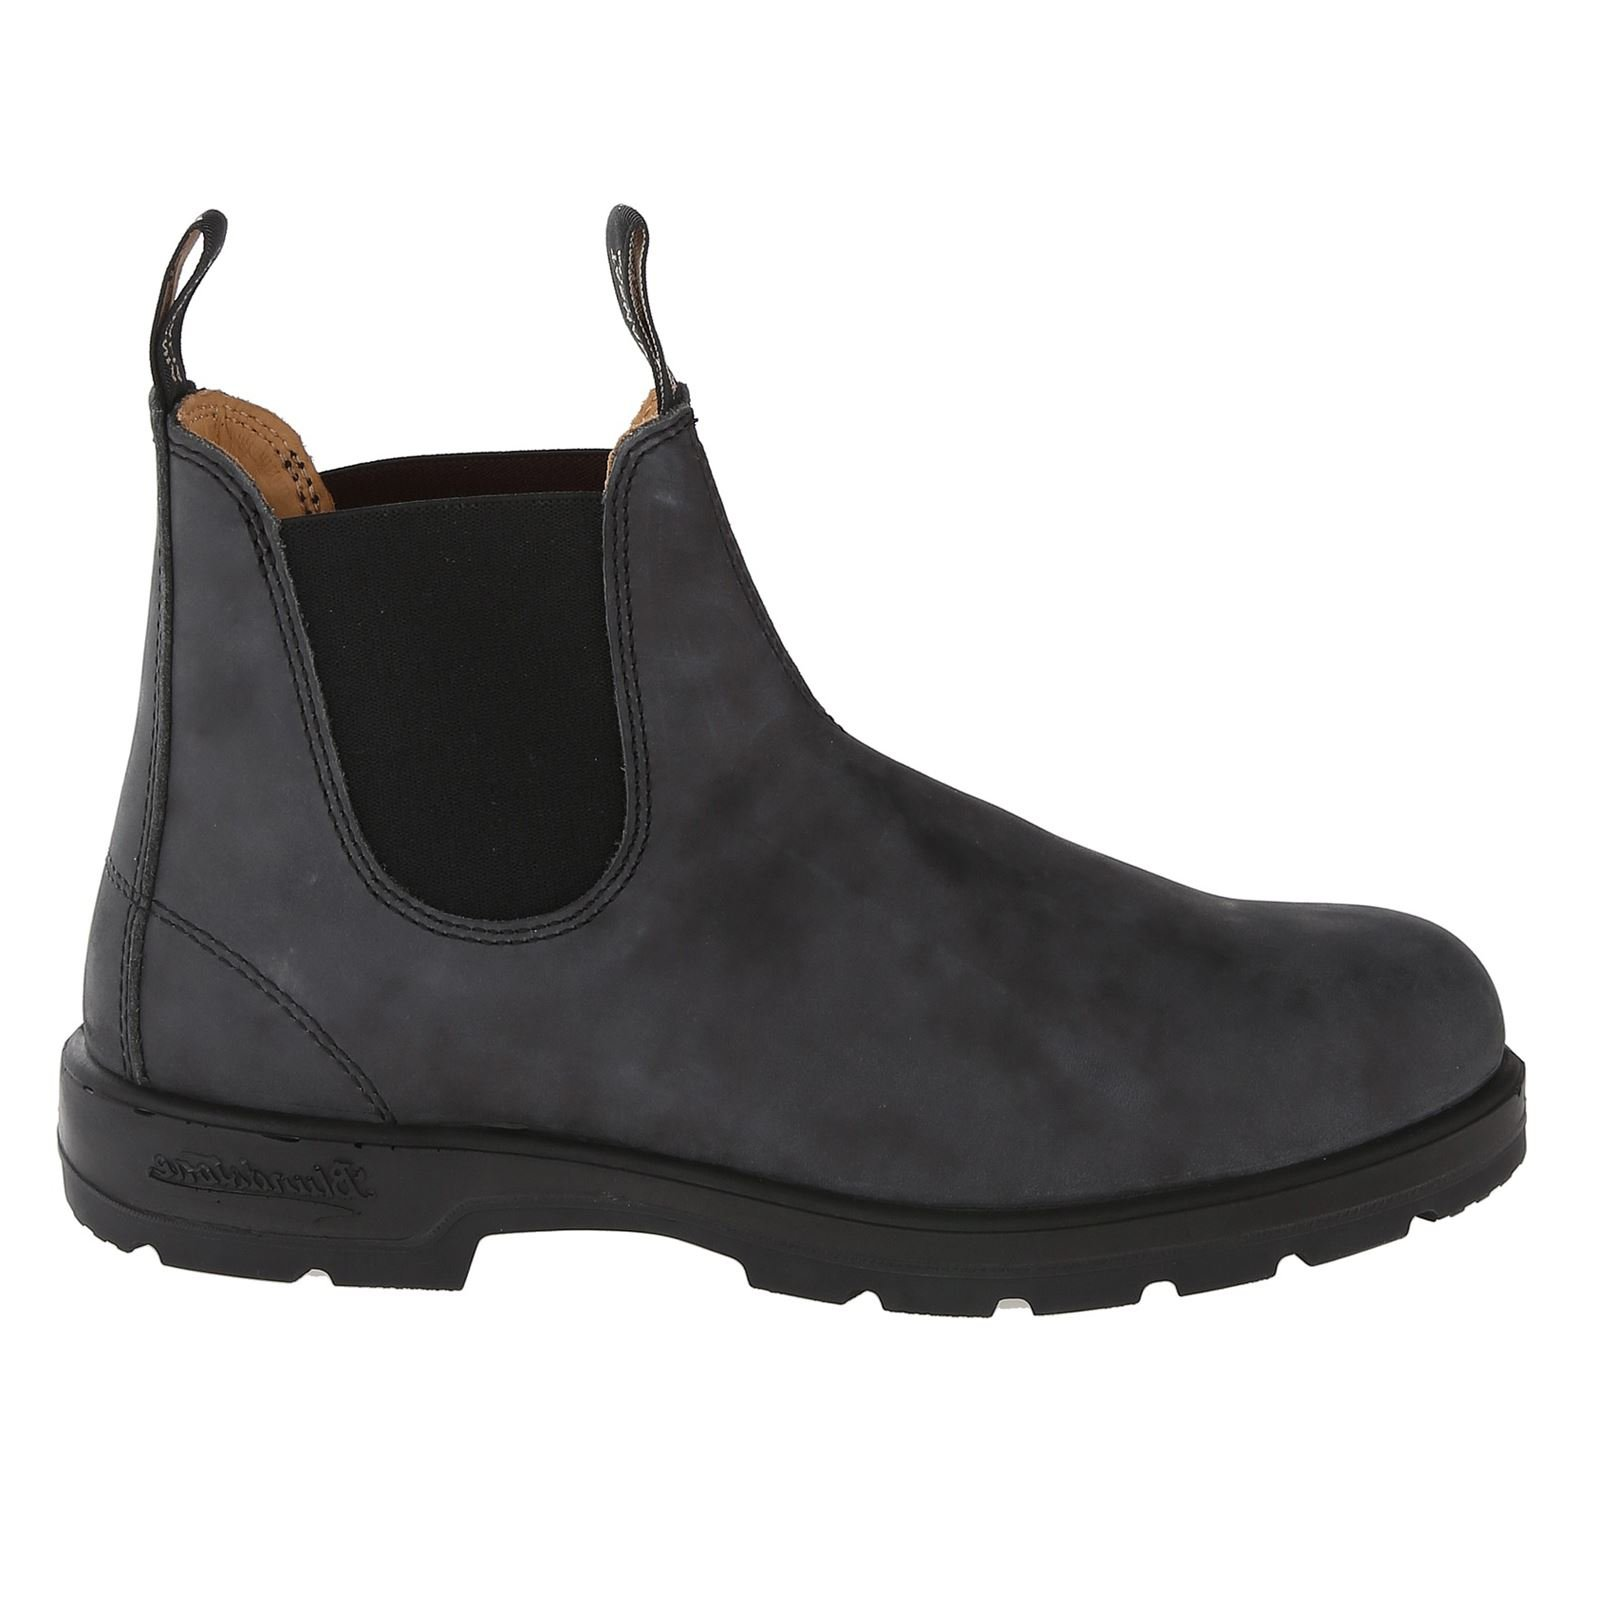 Blundstone Mens 587 Black Leather Boots 11 US